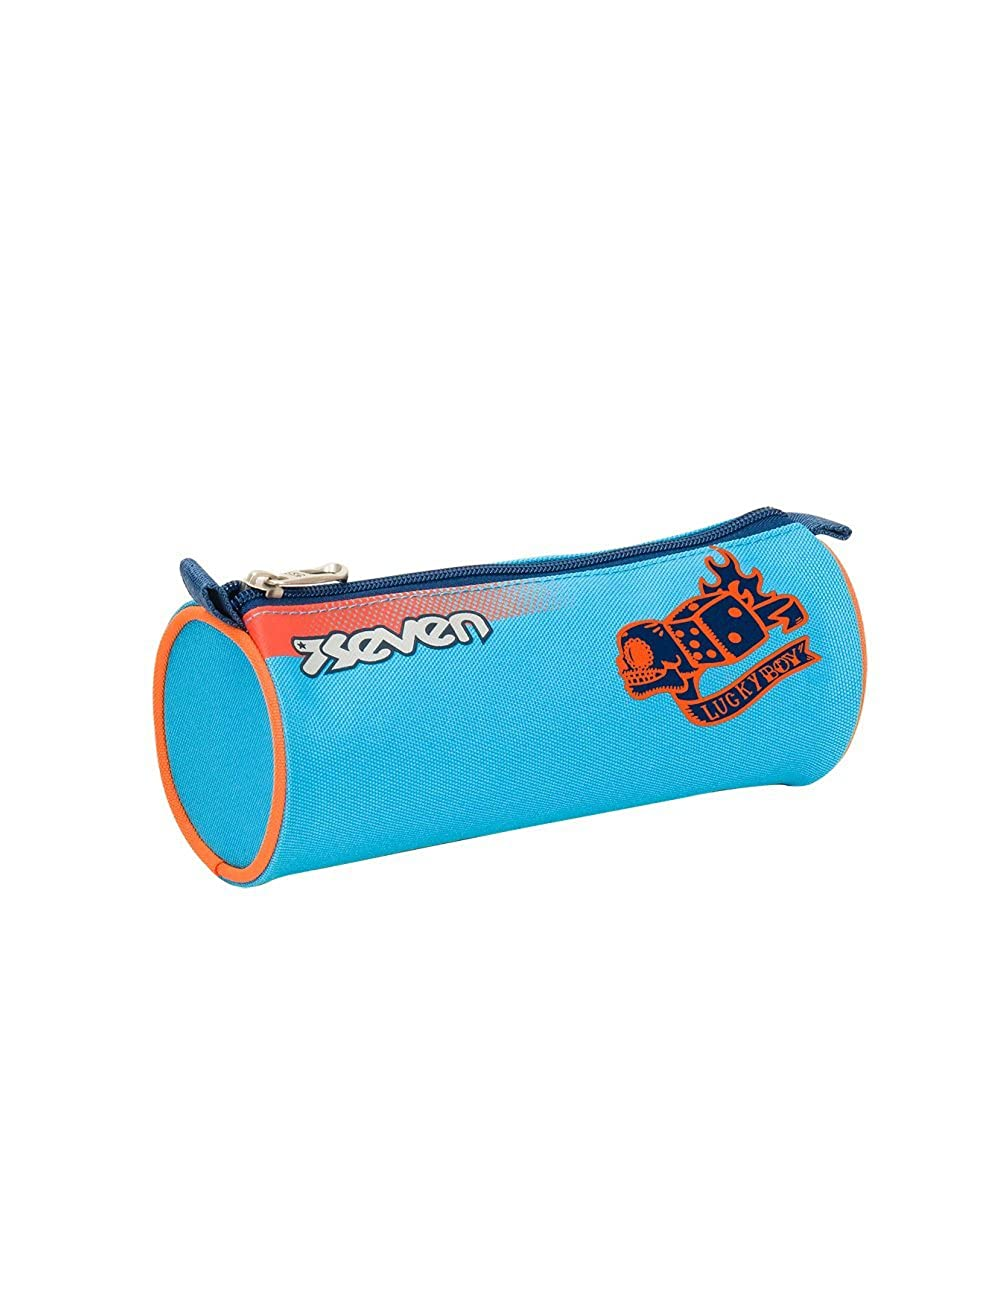 COLOR BOY Blue Orange School Pencil Bag SEVEN